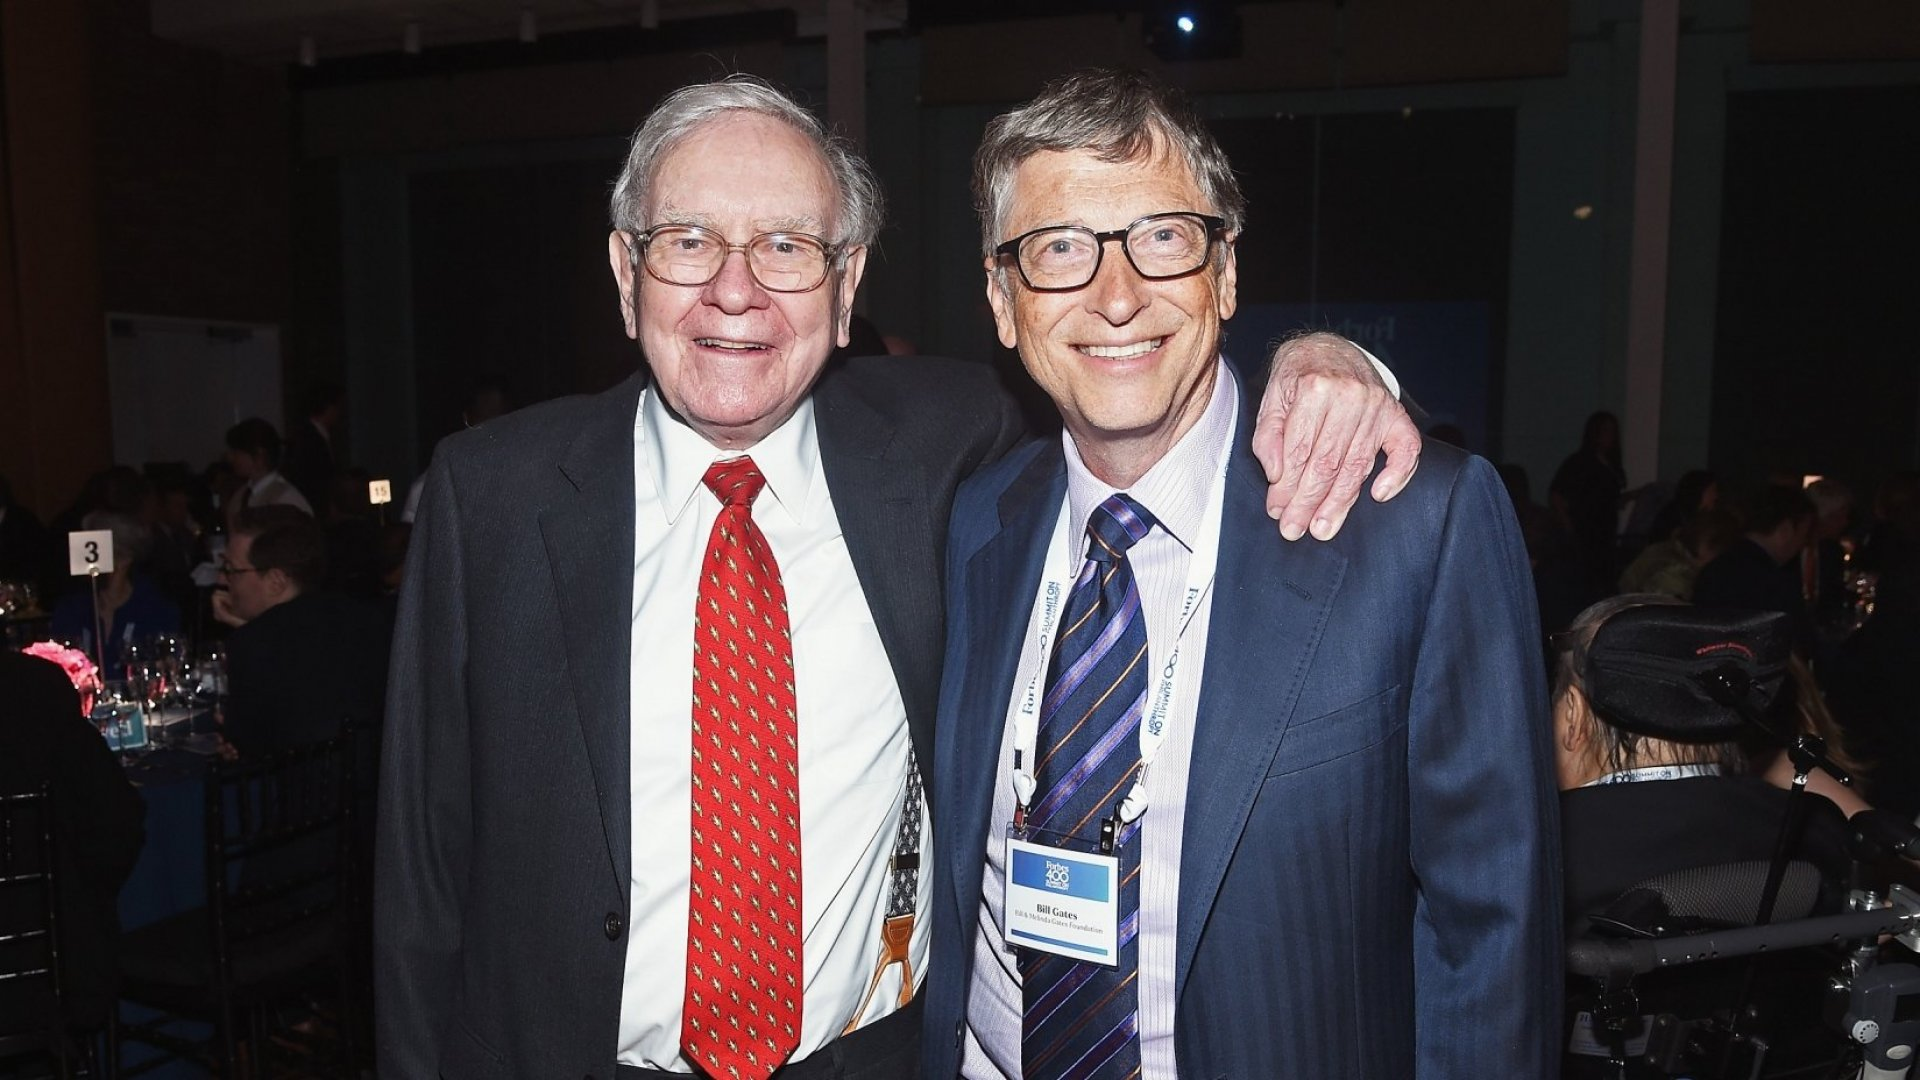 Warren Buffett and Bill Gates at <em>Forbes</em>' 2015 Philanthropy Summit Awards Dinner.